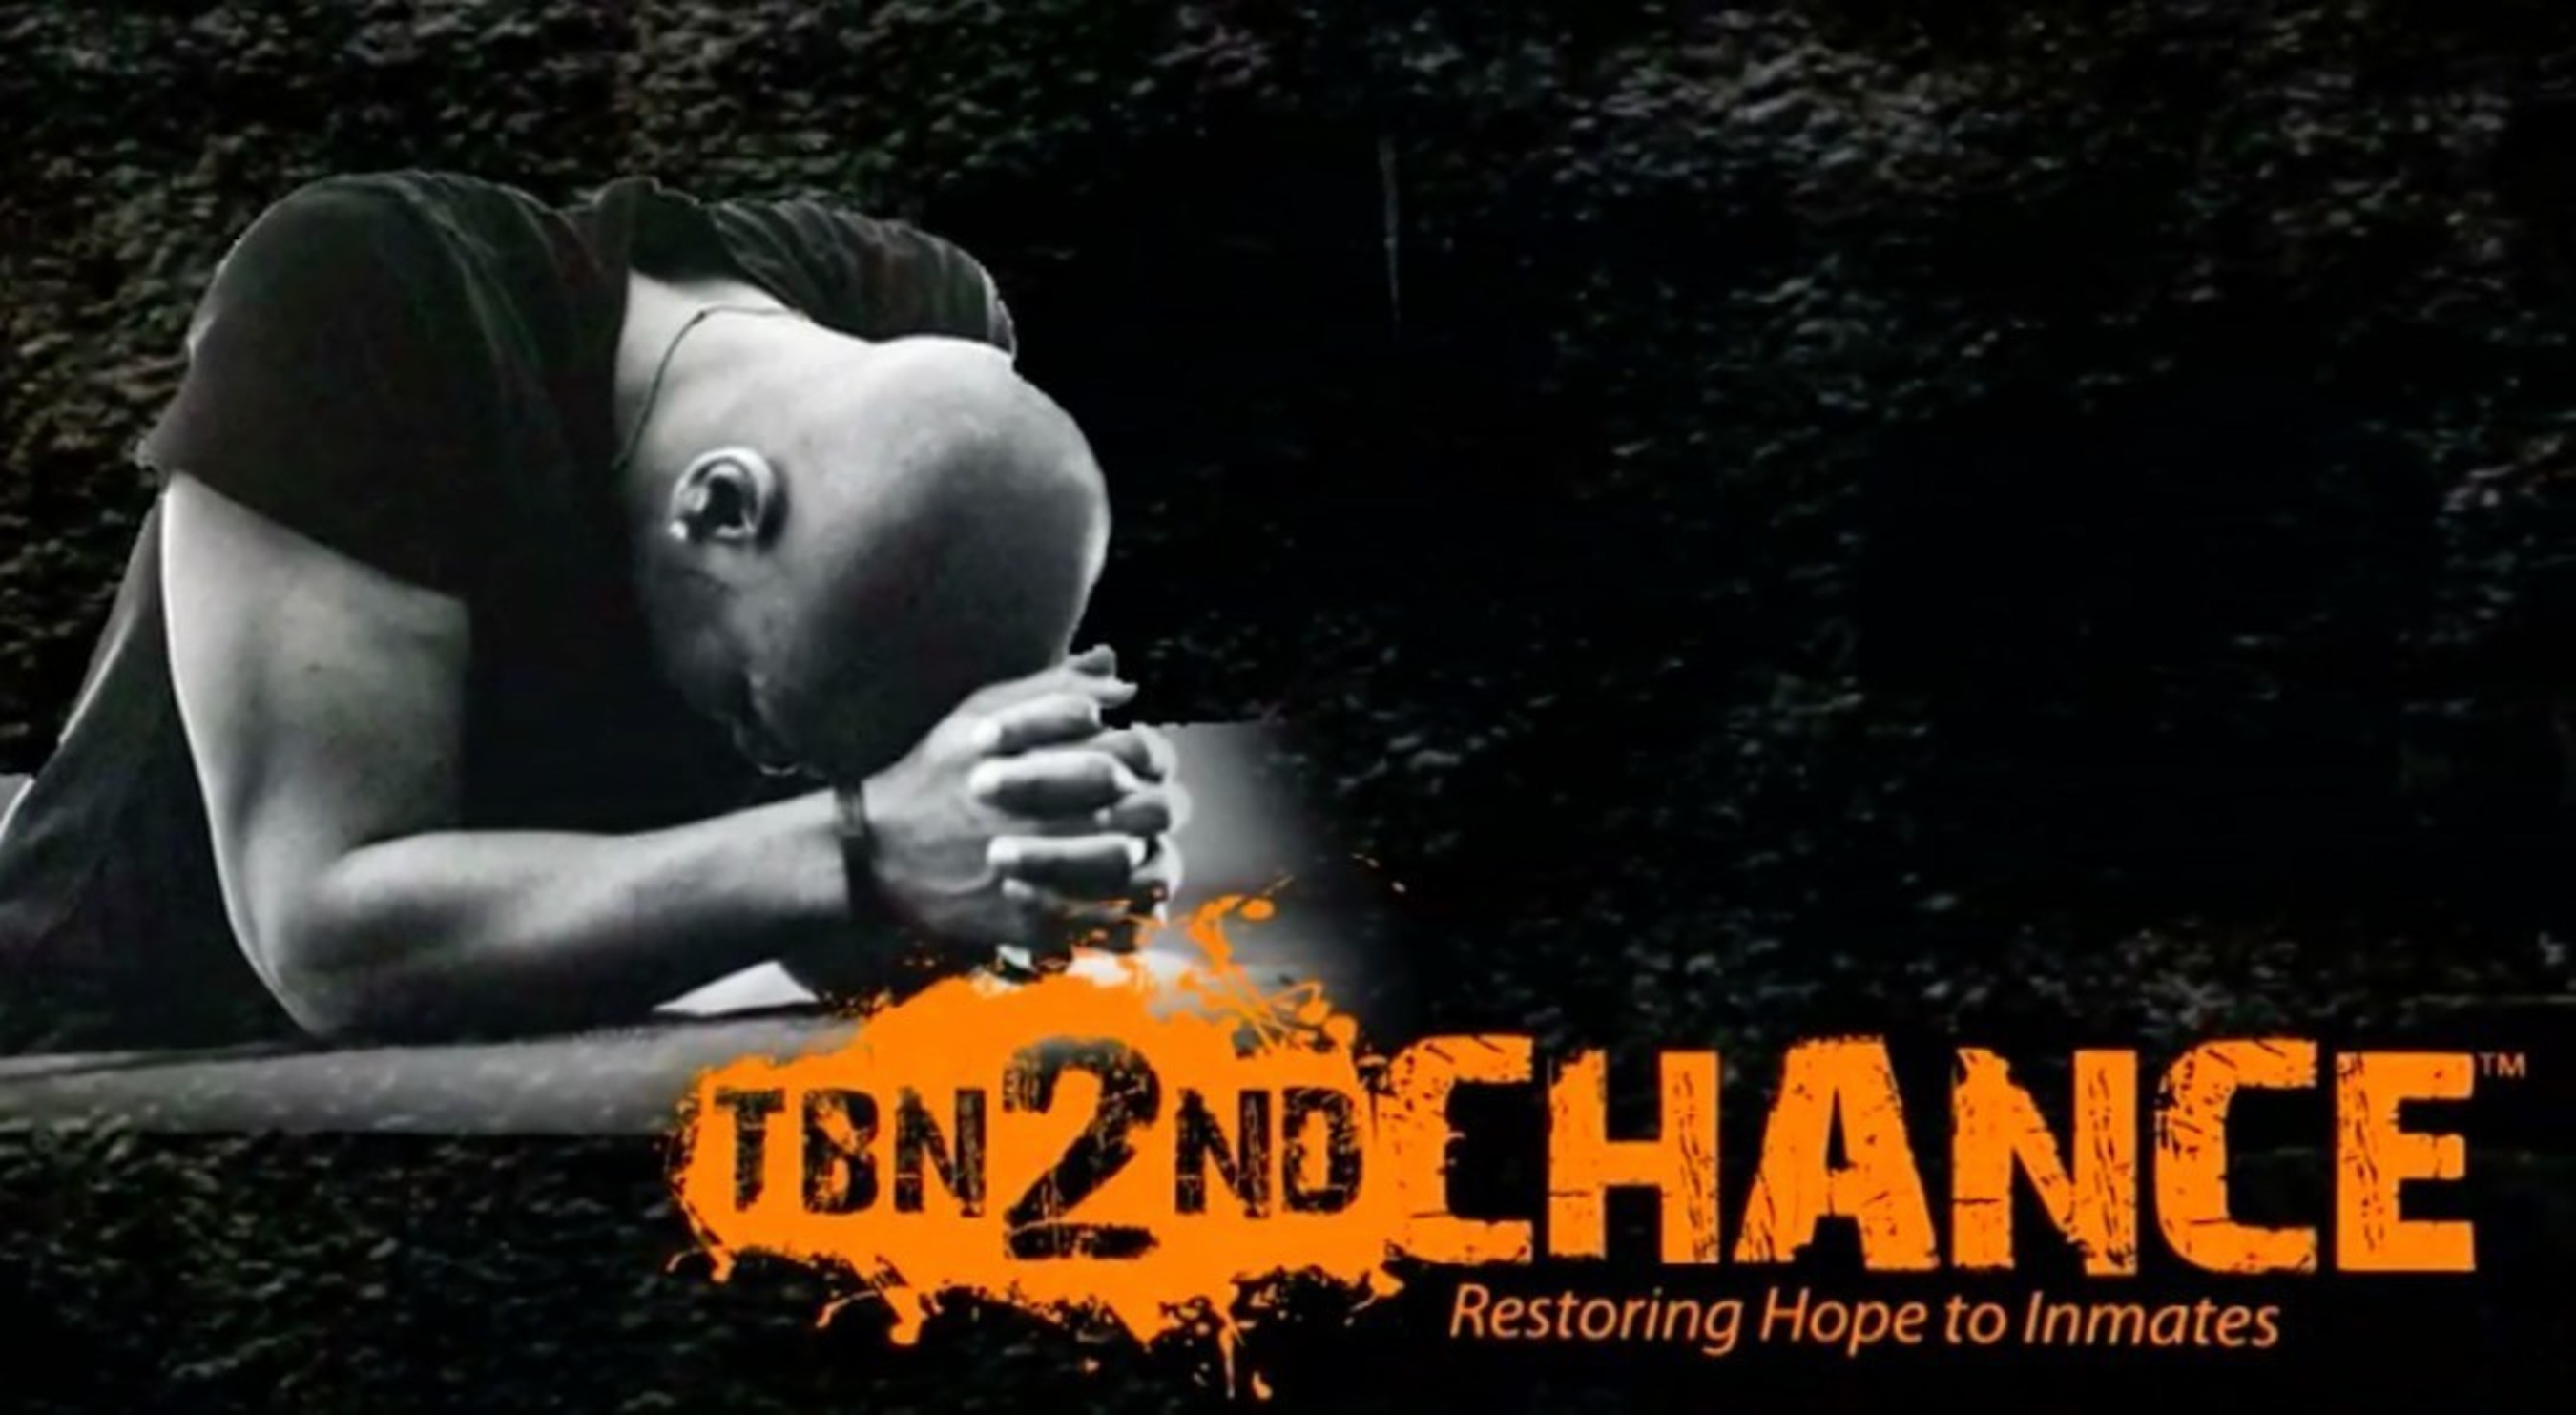 TBN 2nd Chance Taking Hope and Healing to the Imprisoned